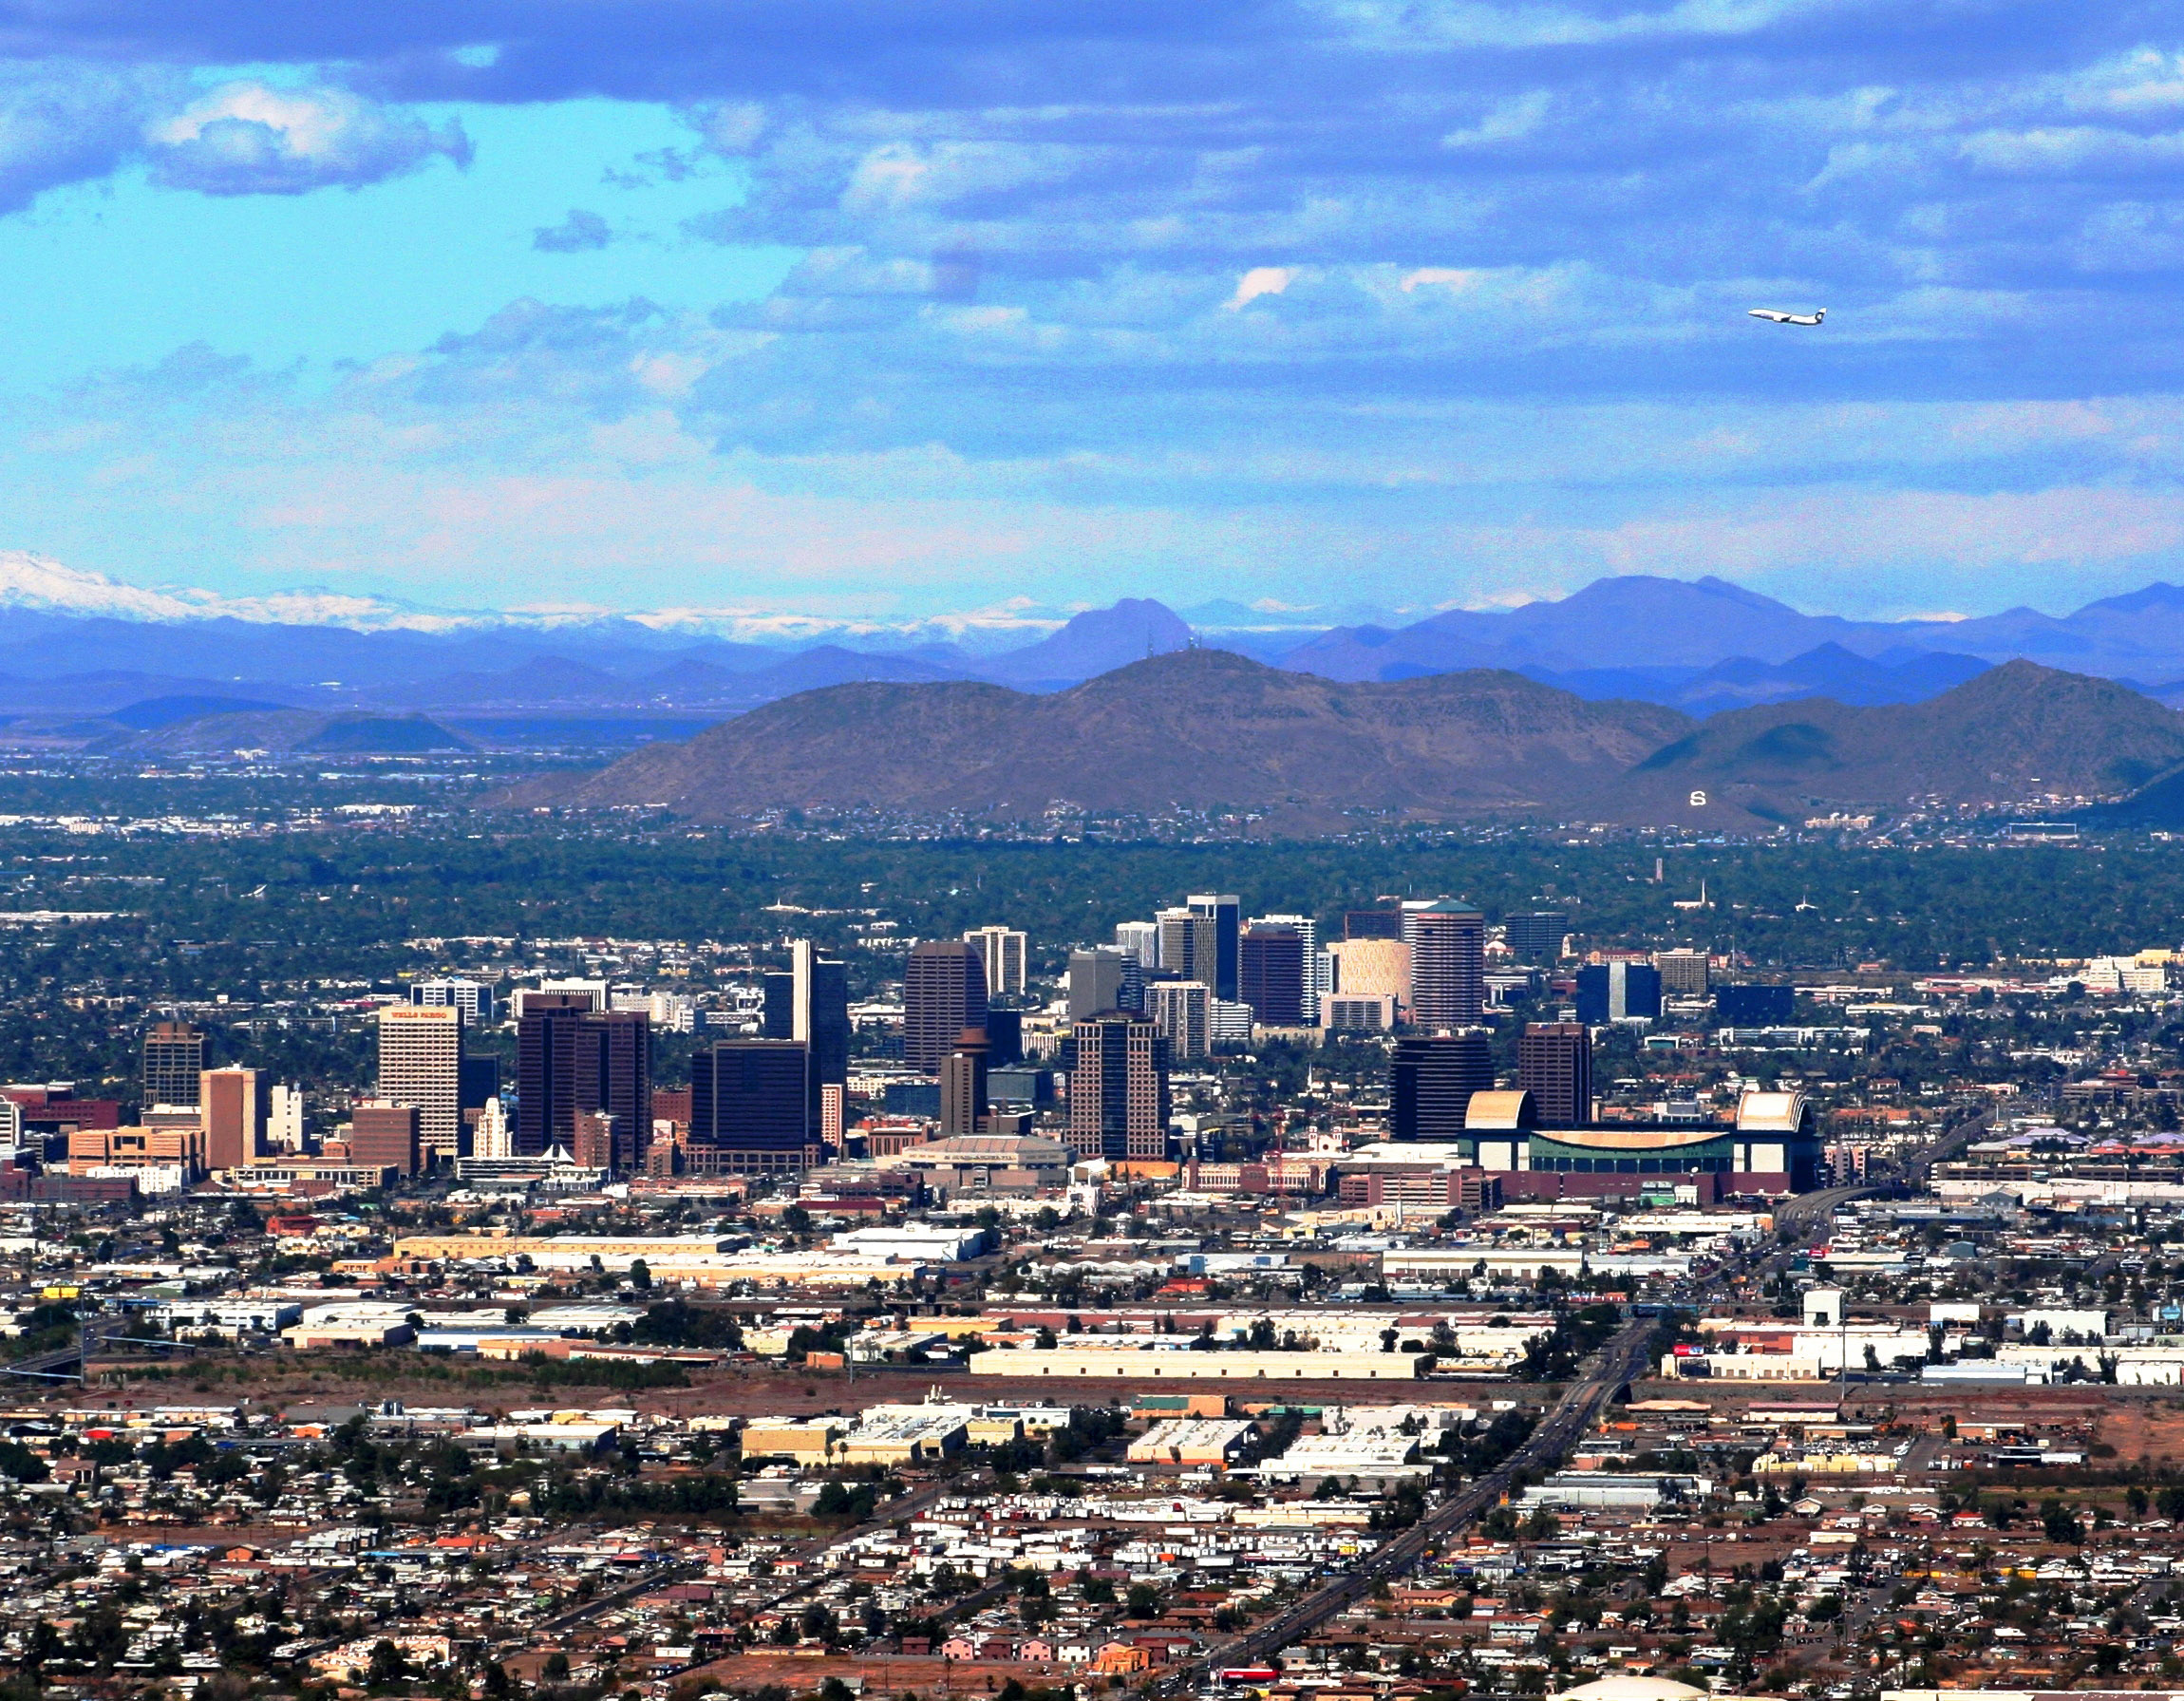 Image for blog article: Visiting Phoenix Arizona